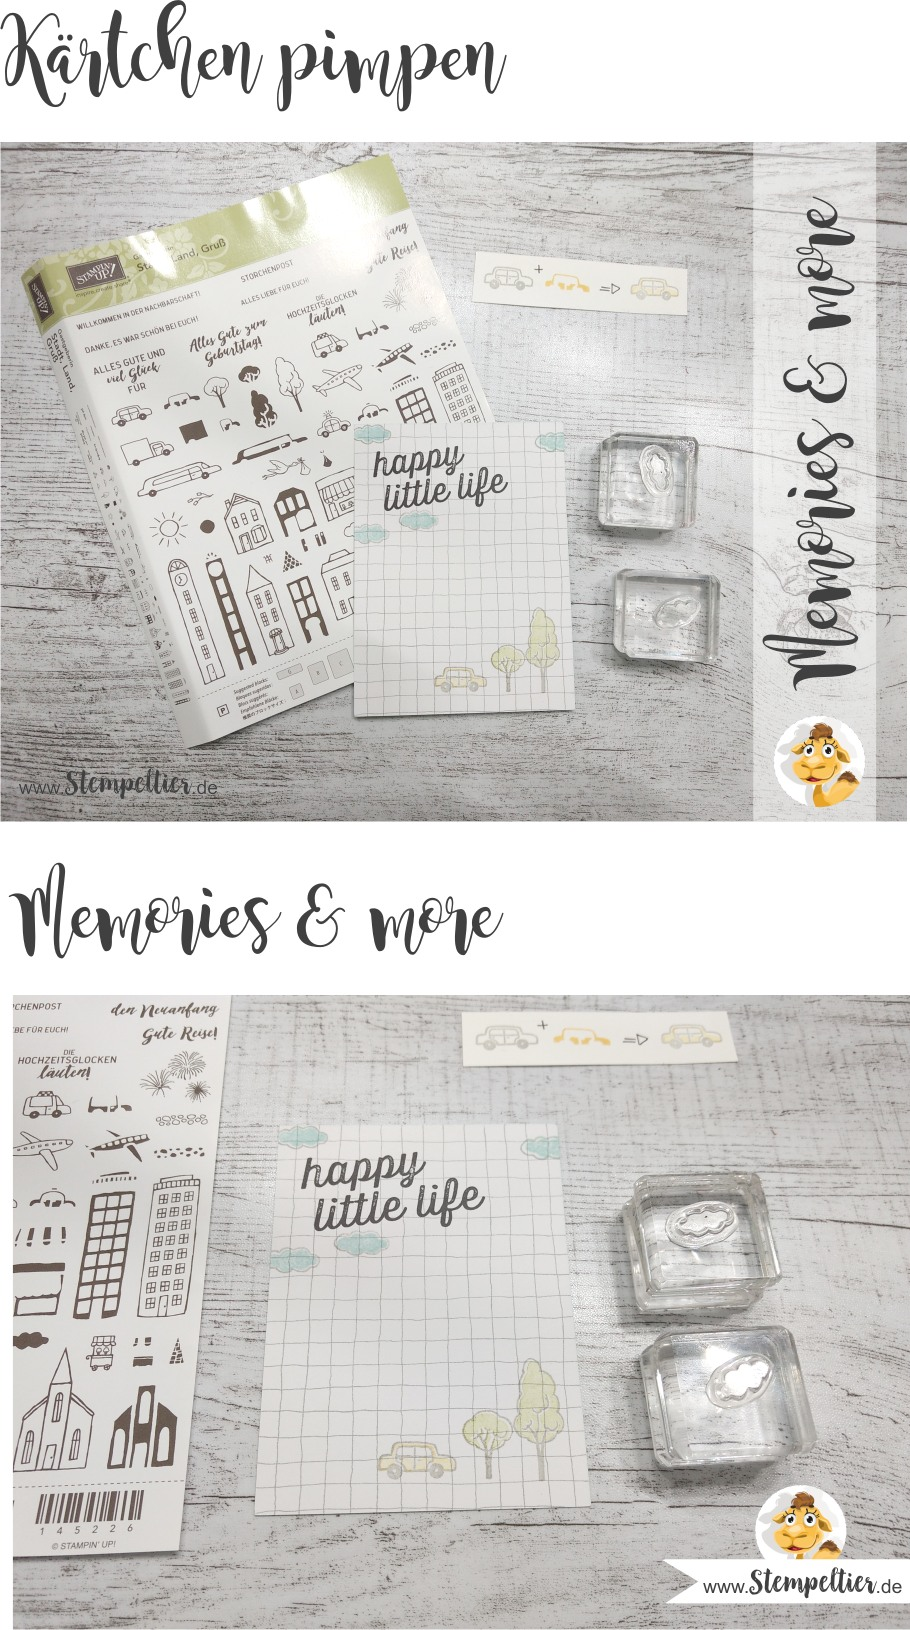 stampin up stadt land gruß auto planner journaling hostess set stempeltier project life memories and more scrapbook